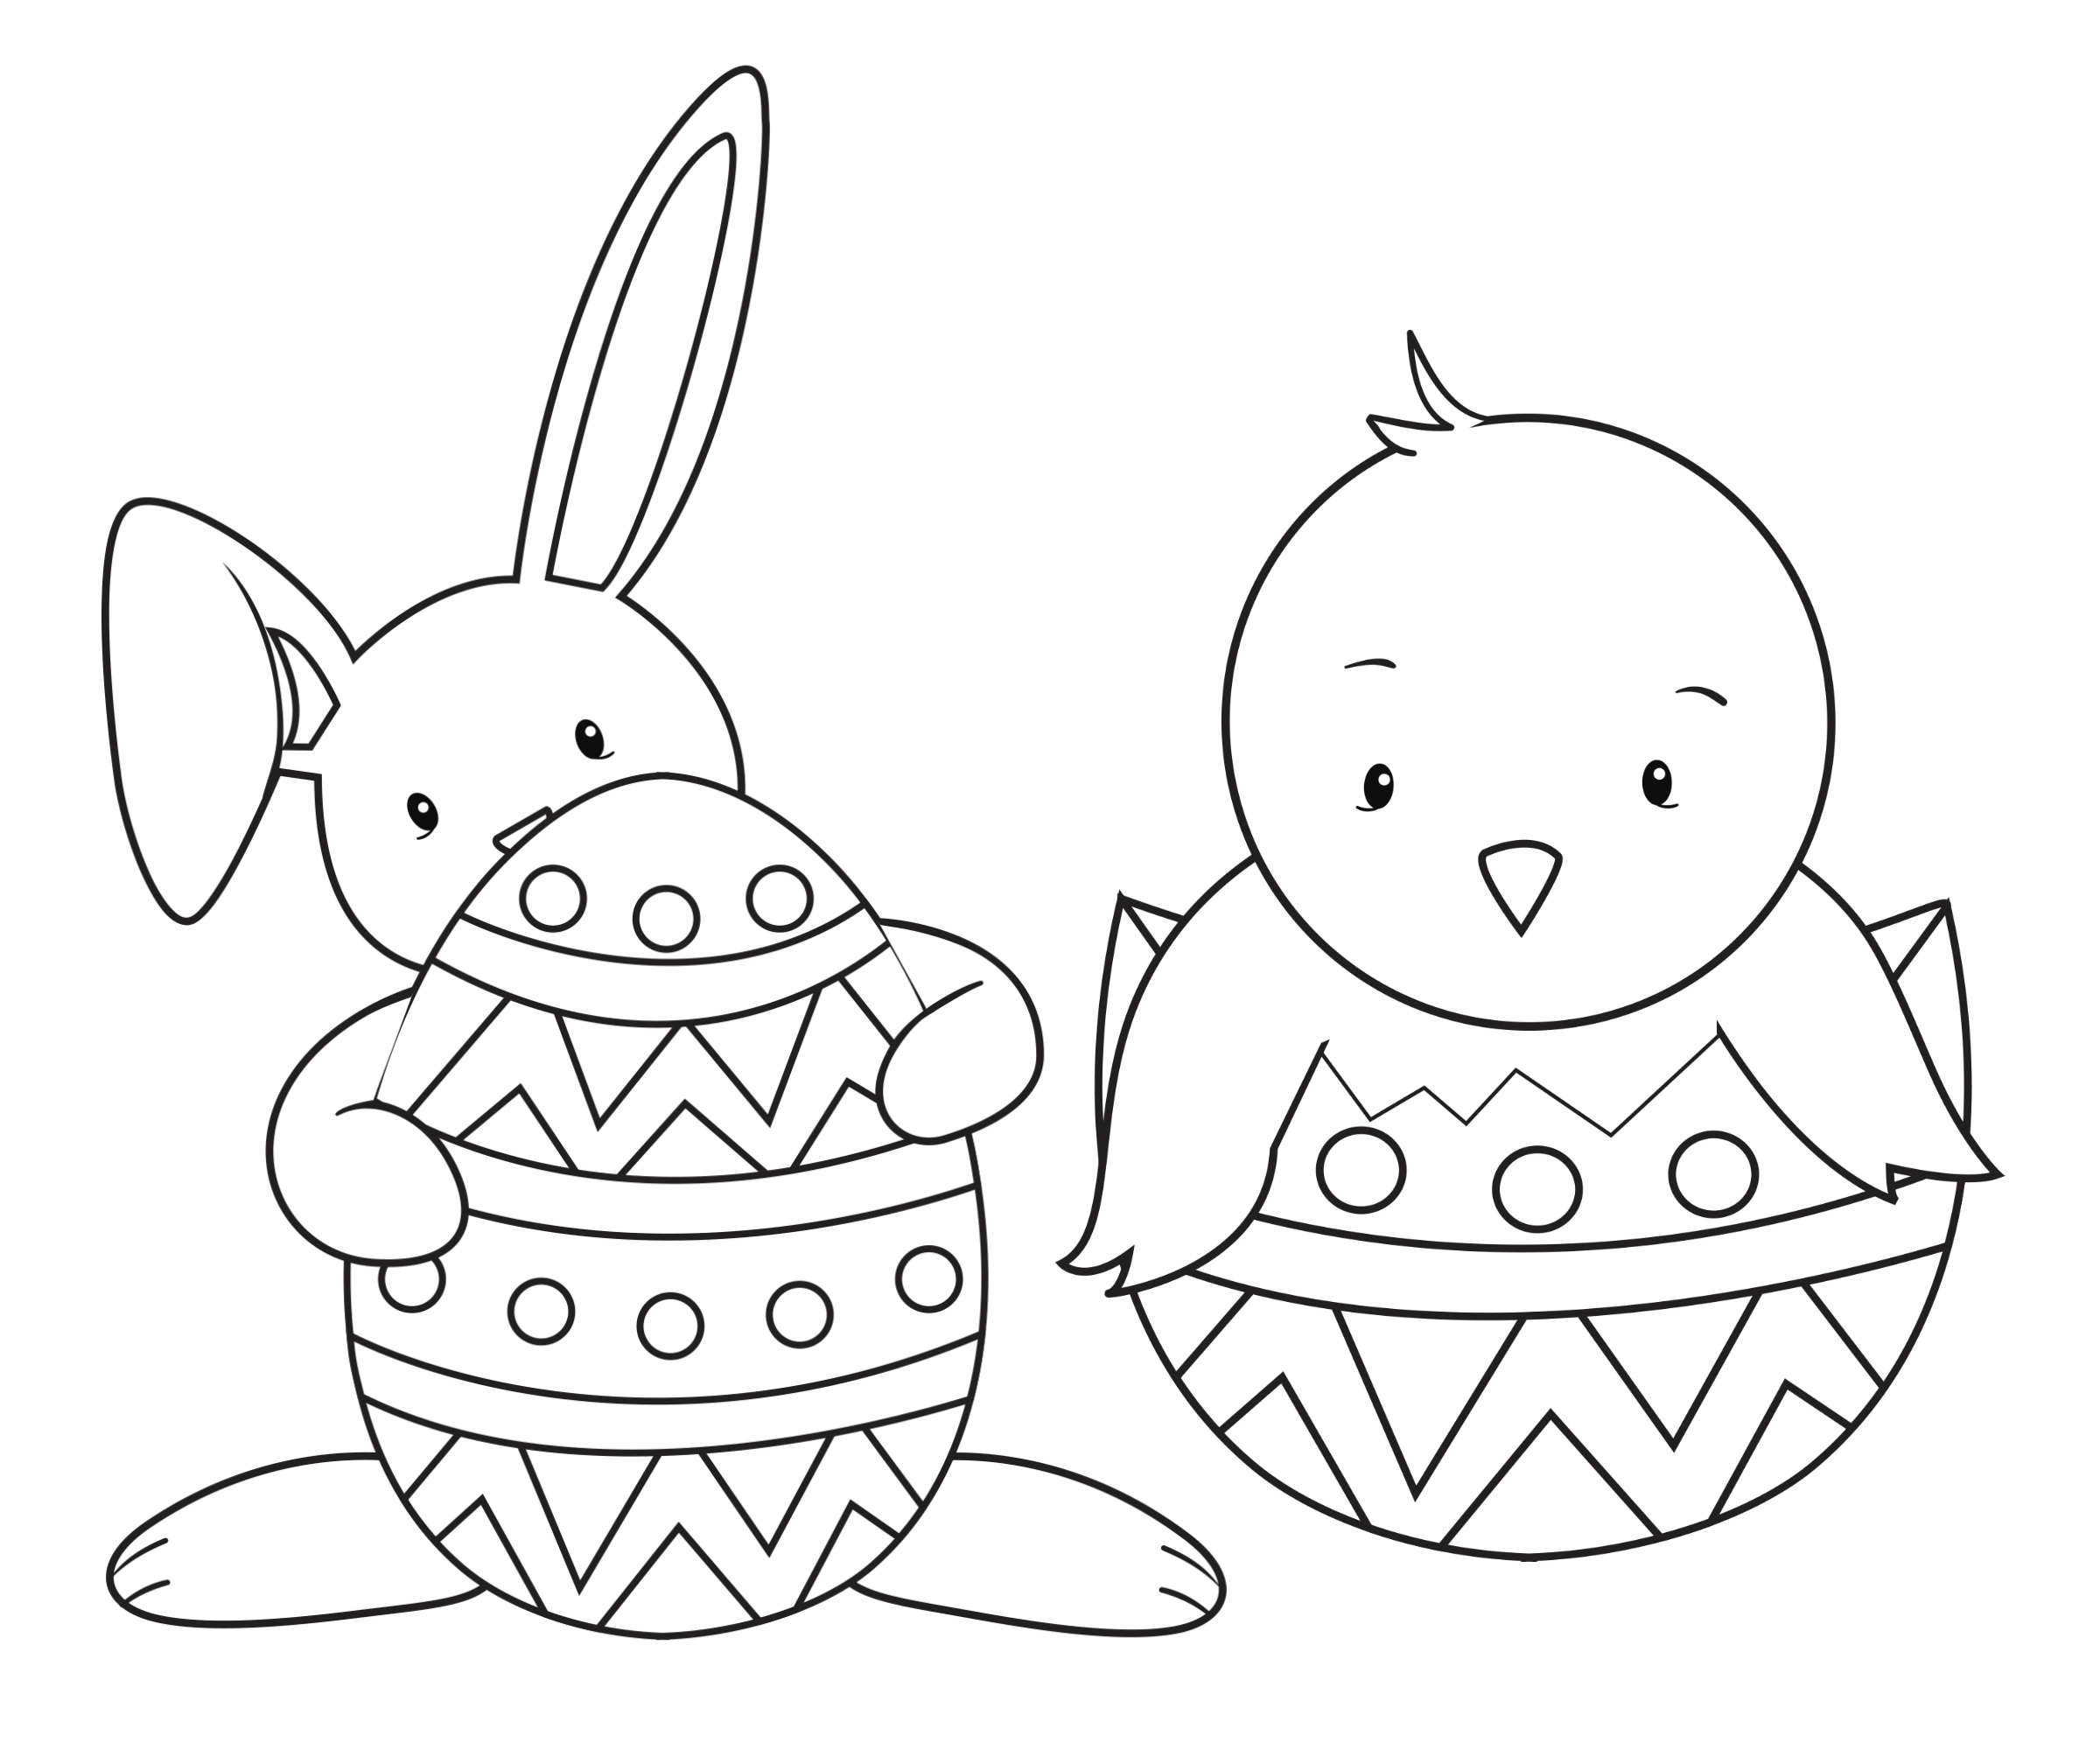 BunnyBasketColoringPage Easter Friends Coloring Page EasterFriends